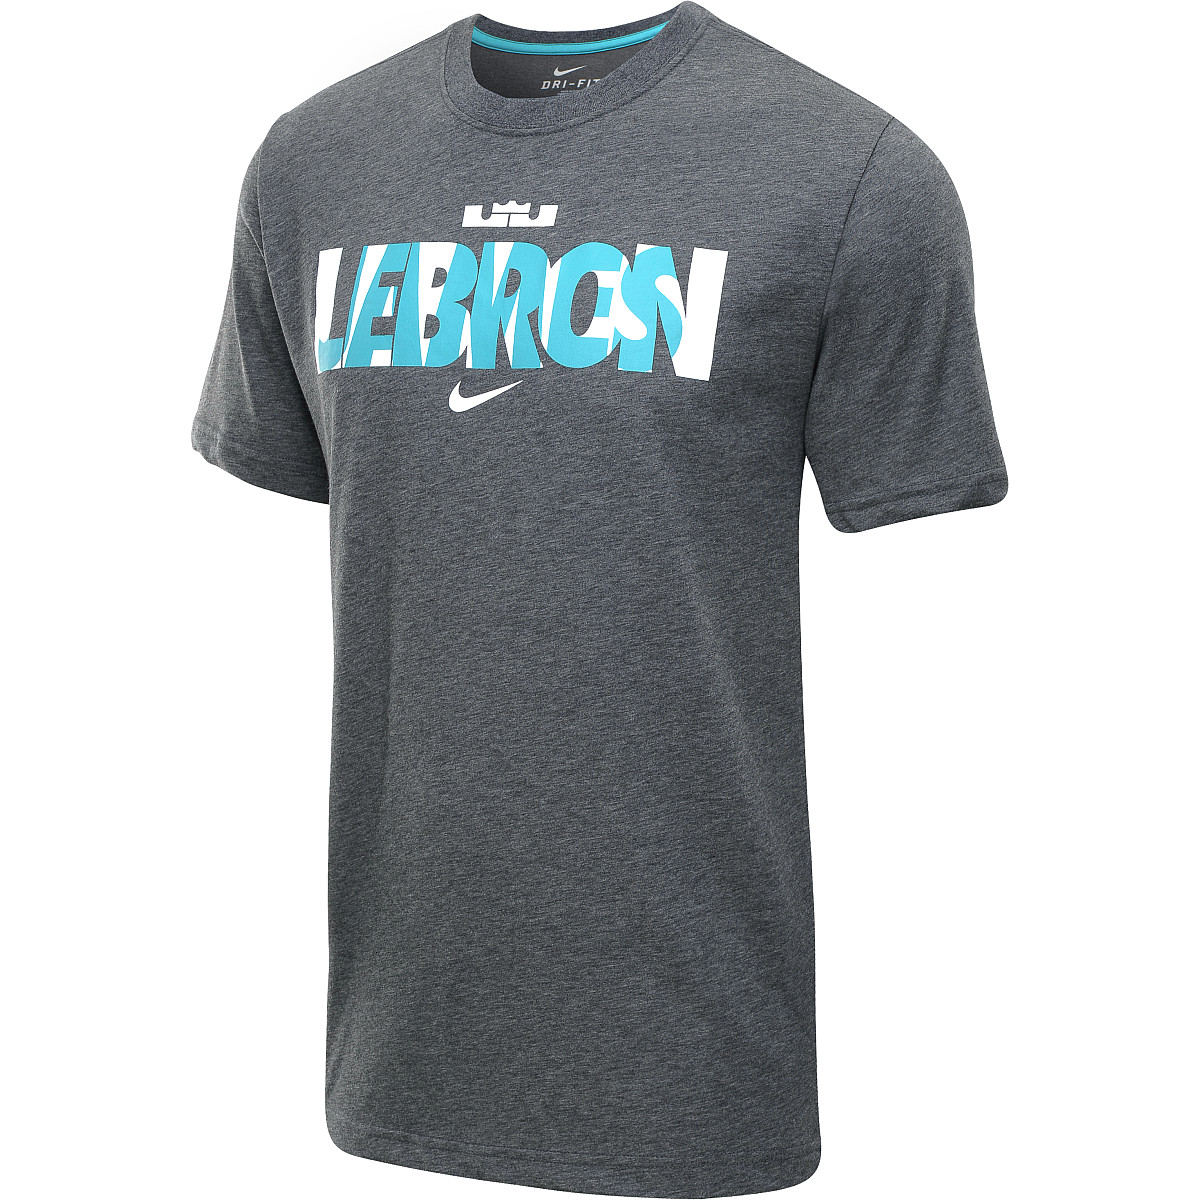 best website 191aa f4b29 NIKE Men s LeBron James Short-Sleeve Basketball T-Shirt